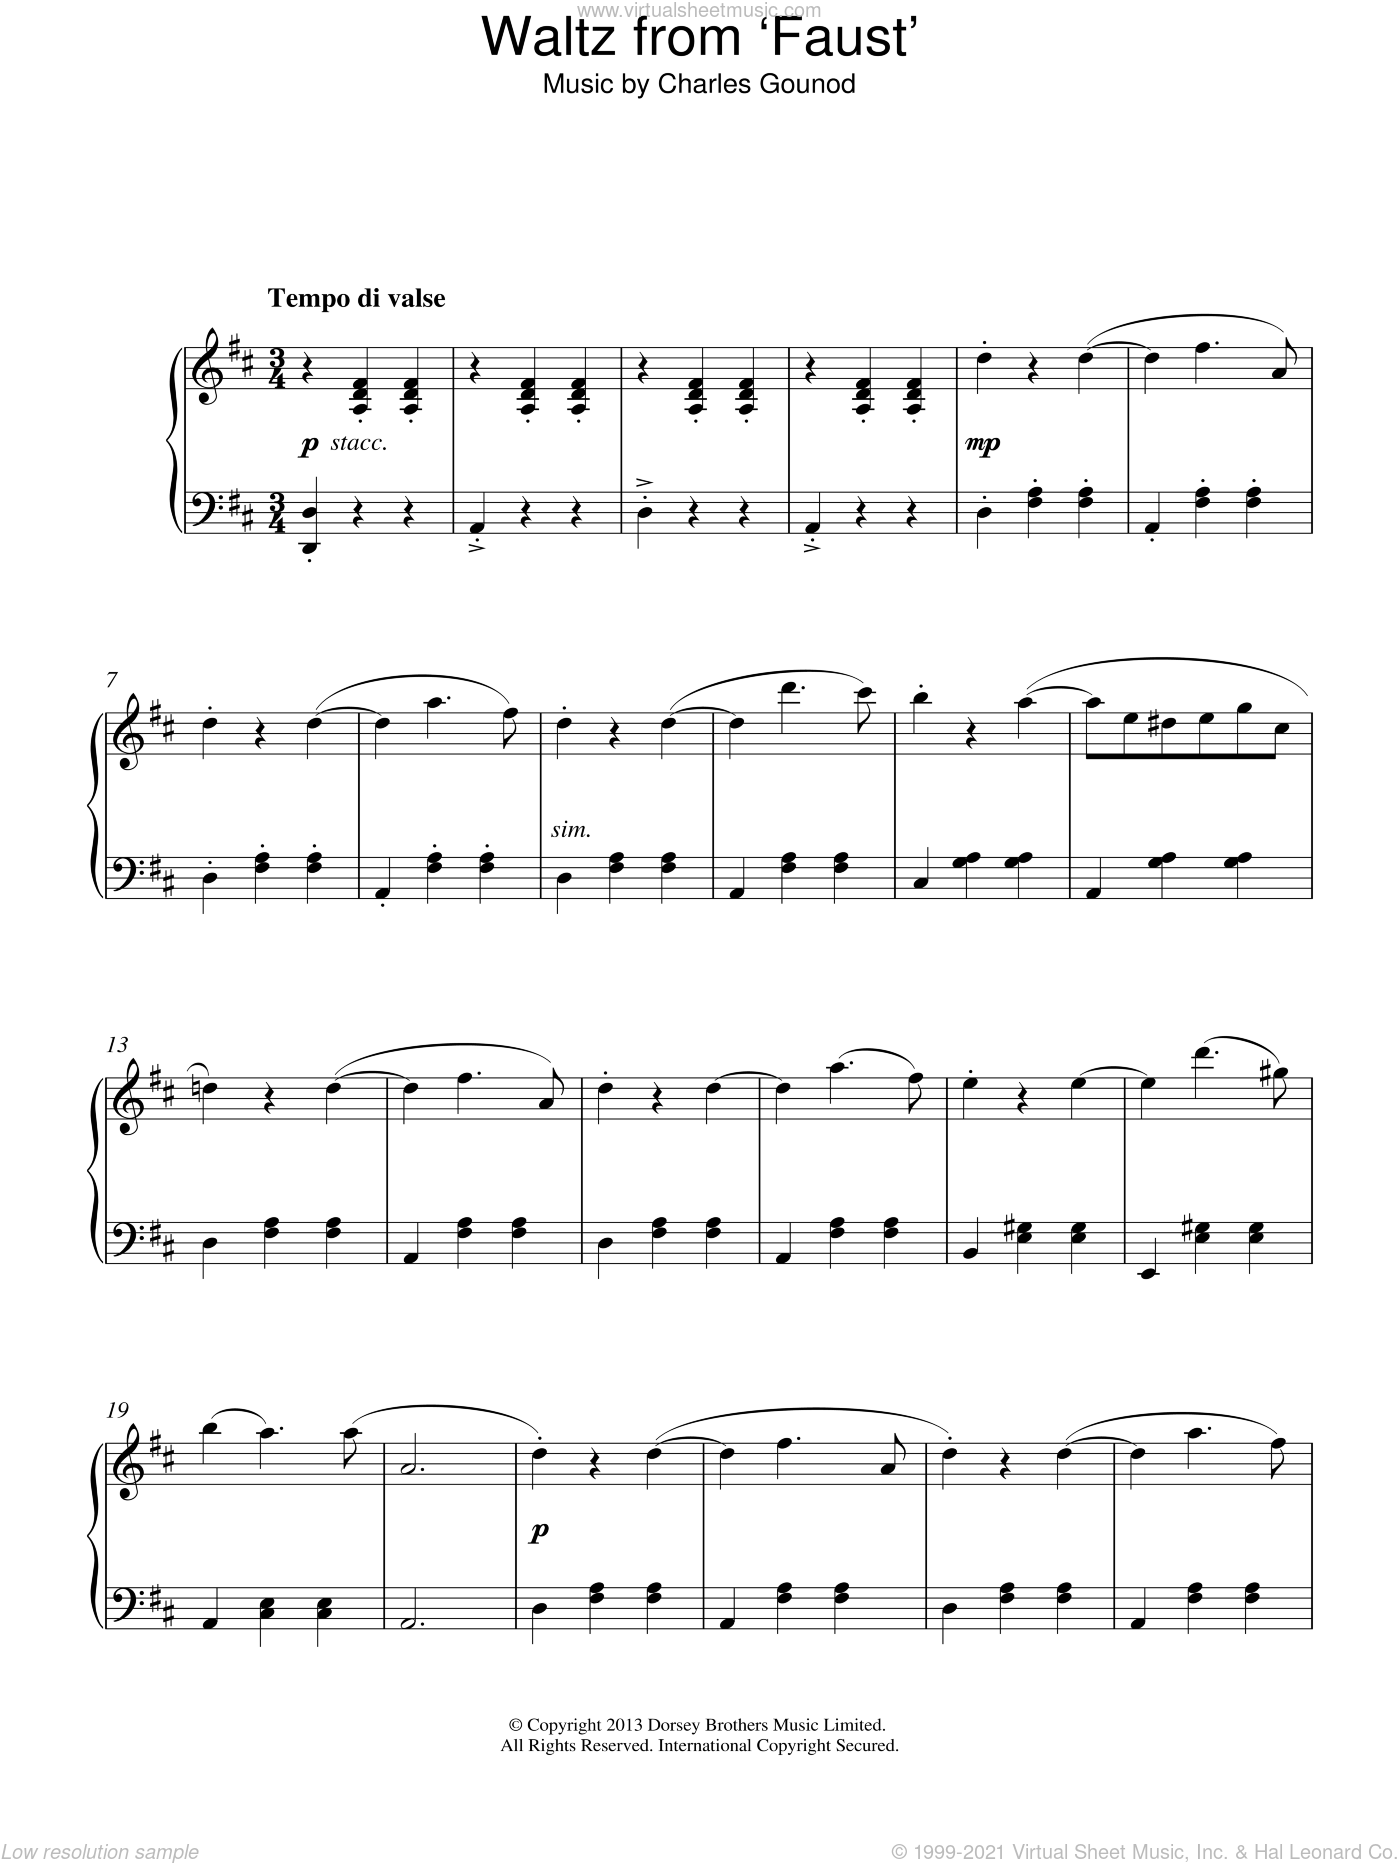 Waltz From Faust sheet music for piano solo by Charles Gounod, classical score, intermediate